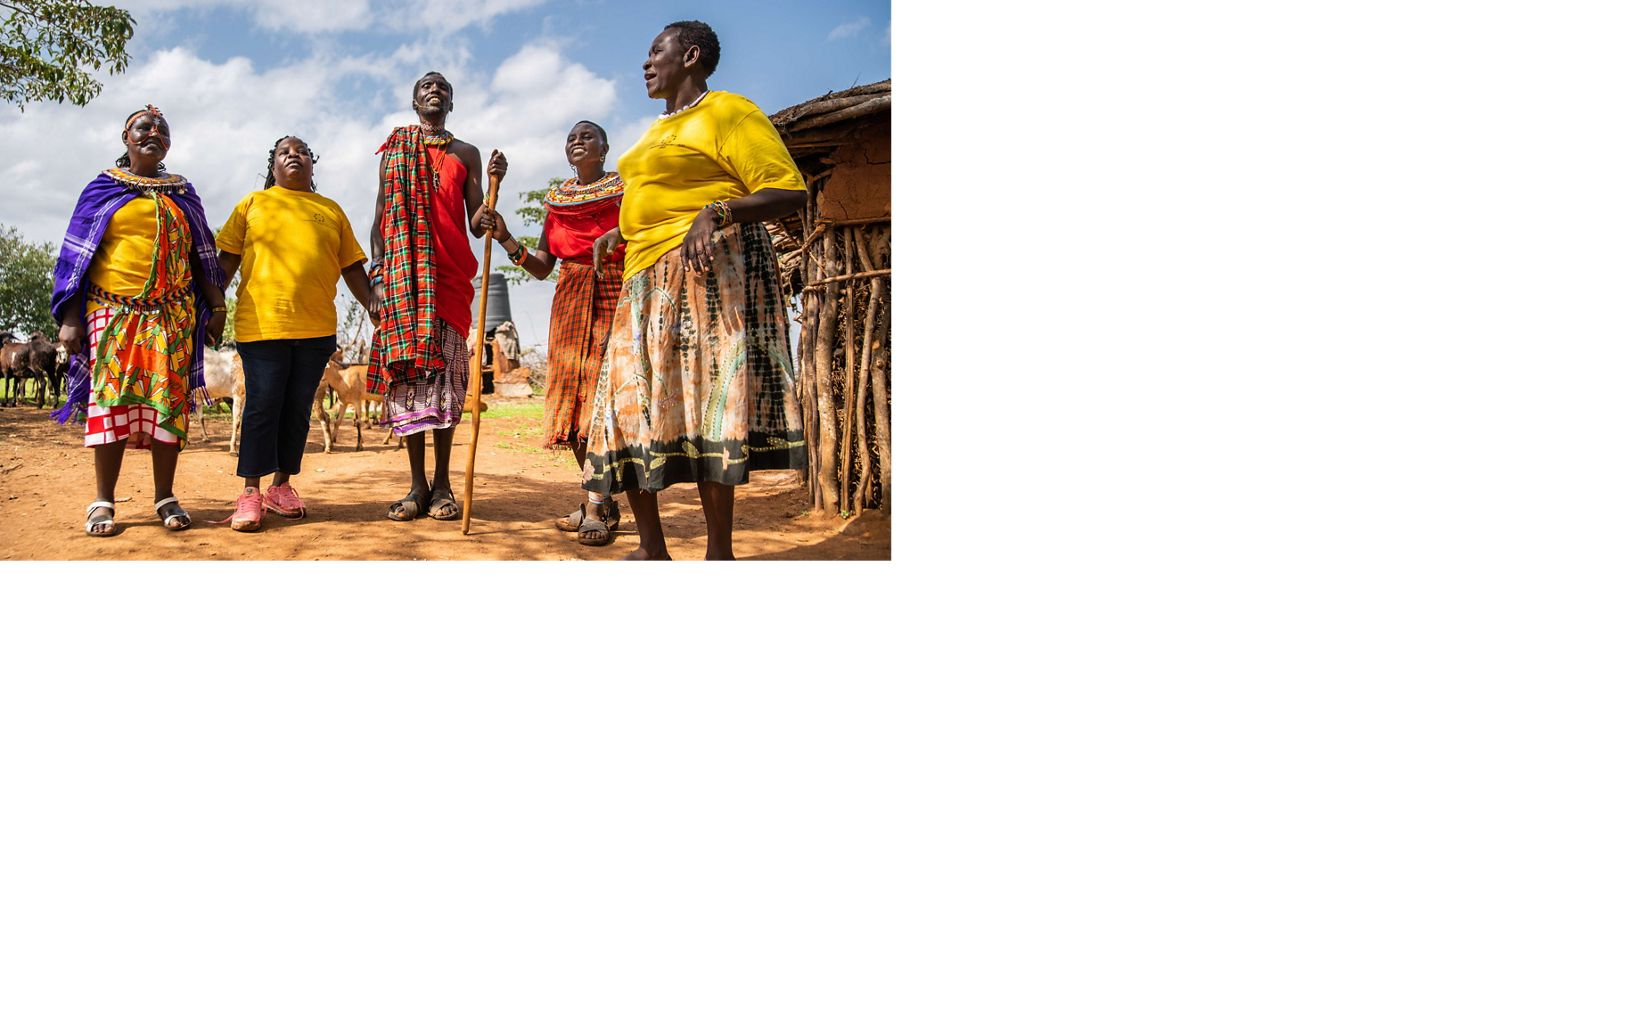 CHAT's Susan Lantare, Rose Kimanzi, and Pauline Lokipi (from left to right, in yellow) sing and dance with CHAT clients Bahati Lequto and Selina Molparakuo.